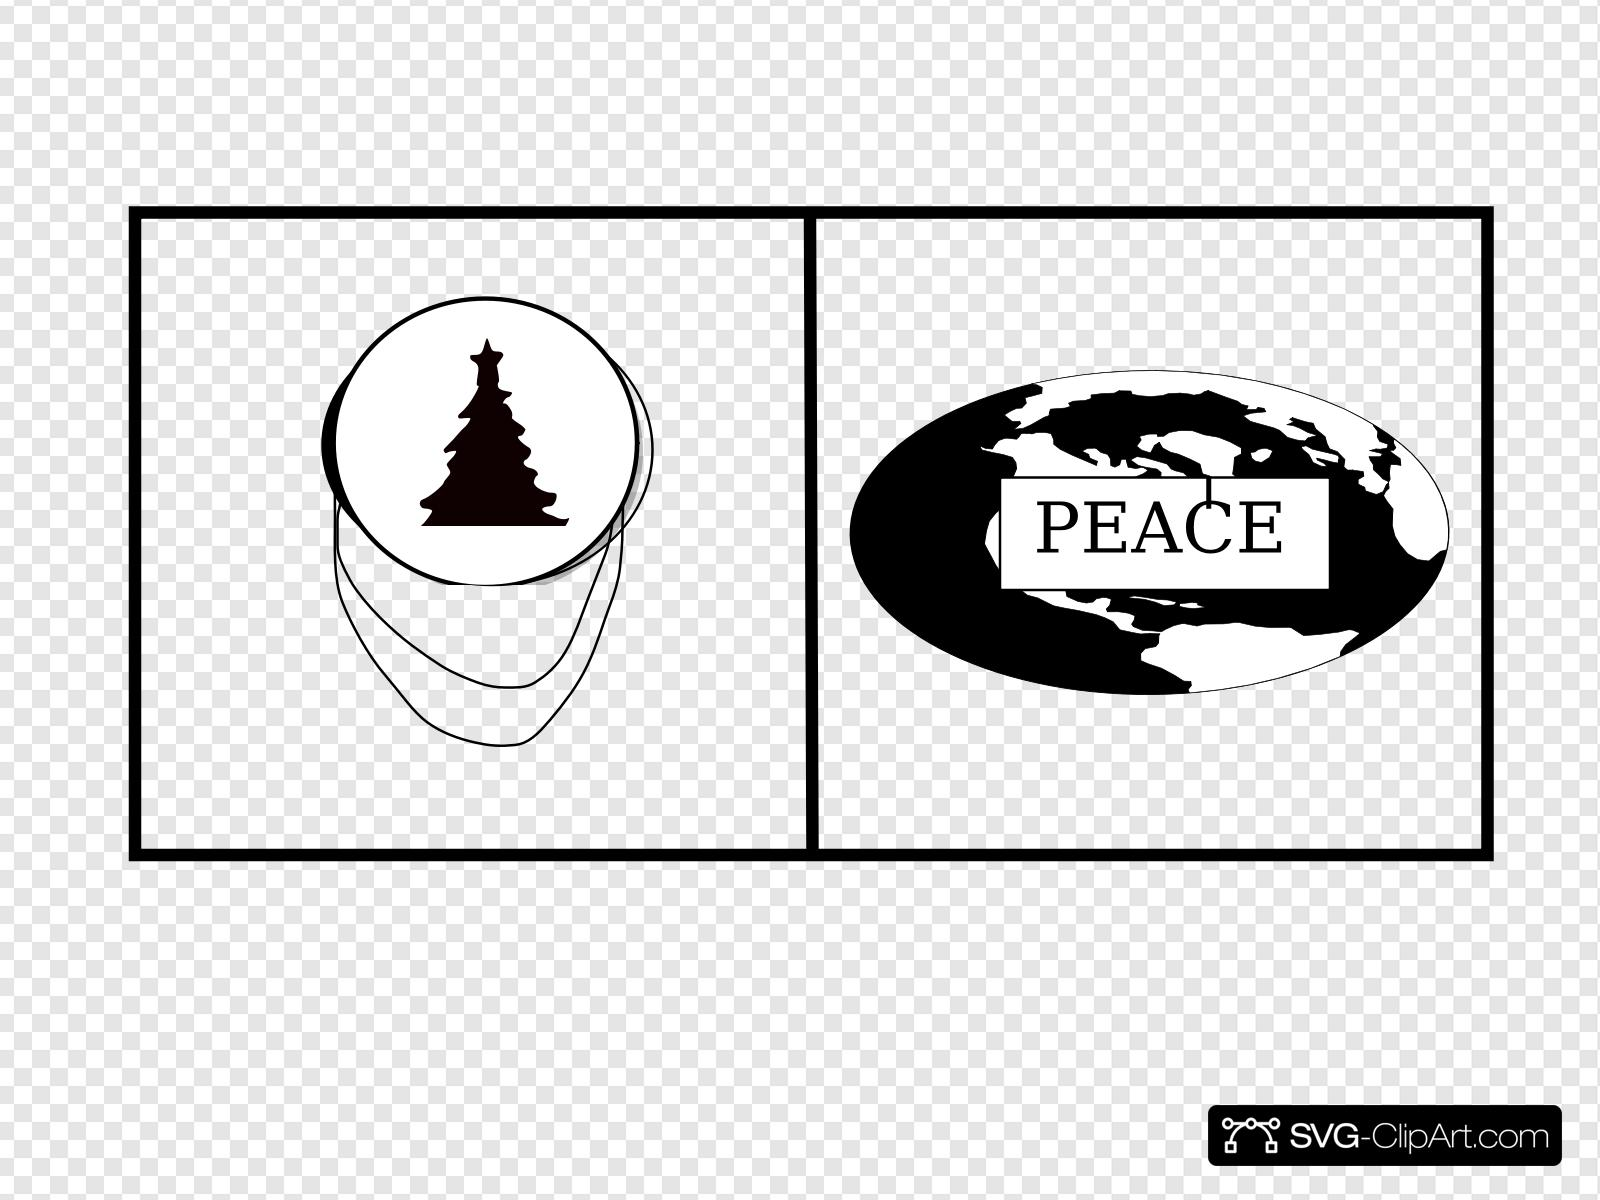 Peace tree clipart banner stock World Peace Tree Clip art, Icon and SVG - SVG Clipart banner stock